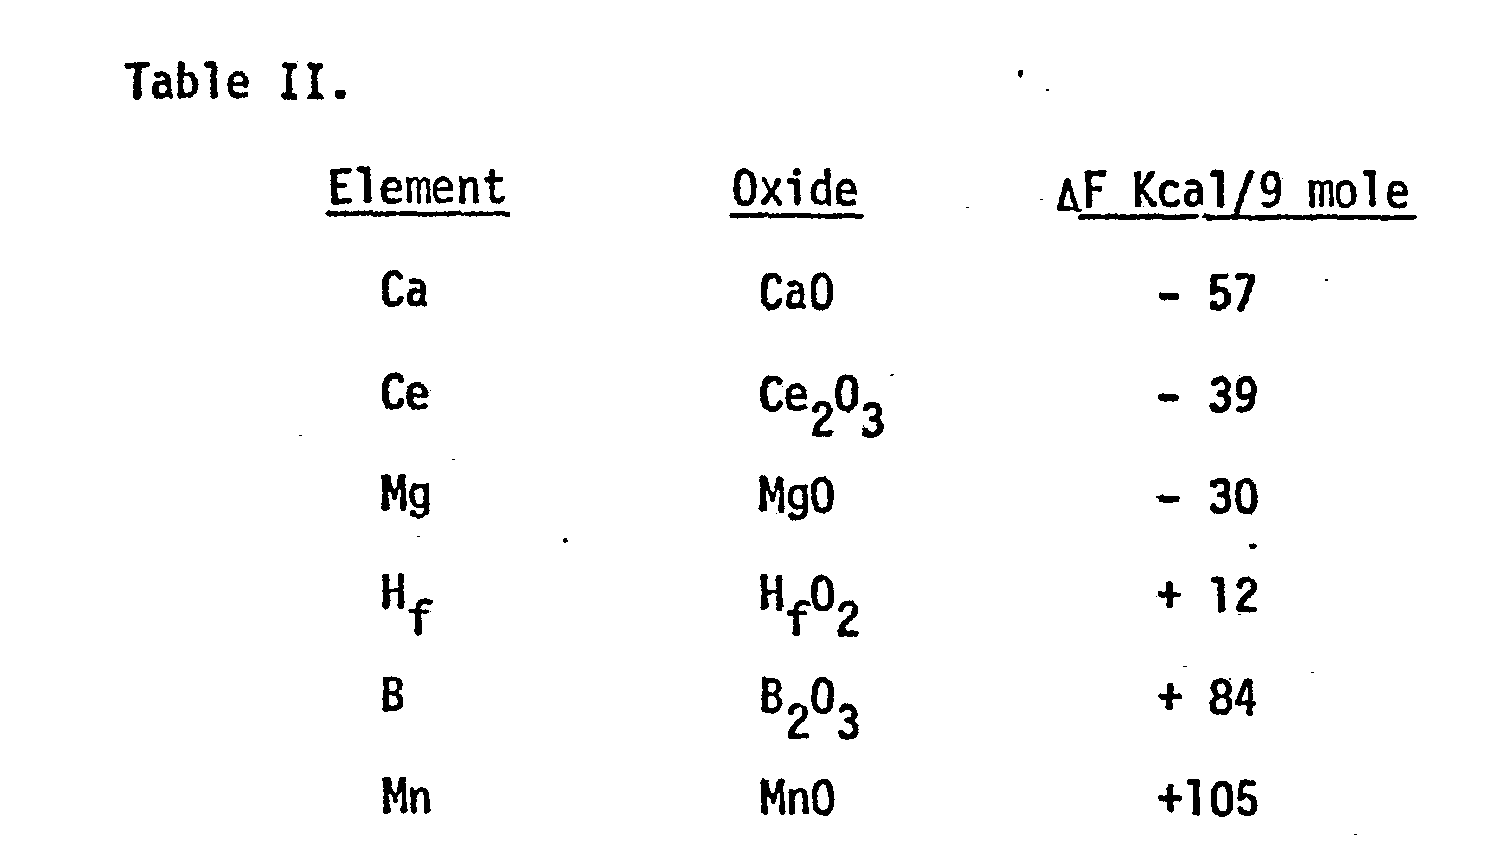 heat of formation of magnesium oxide The broad question that is been answered by doing this experiment is this: what is the enthalpy of formation of magnesium oxide the experiment described above is been set up to determine.